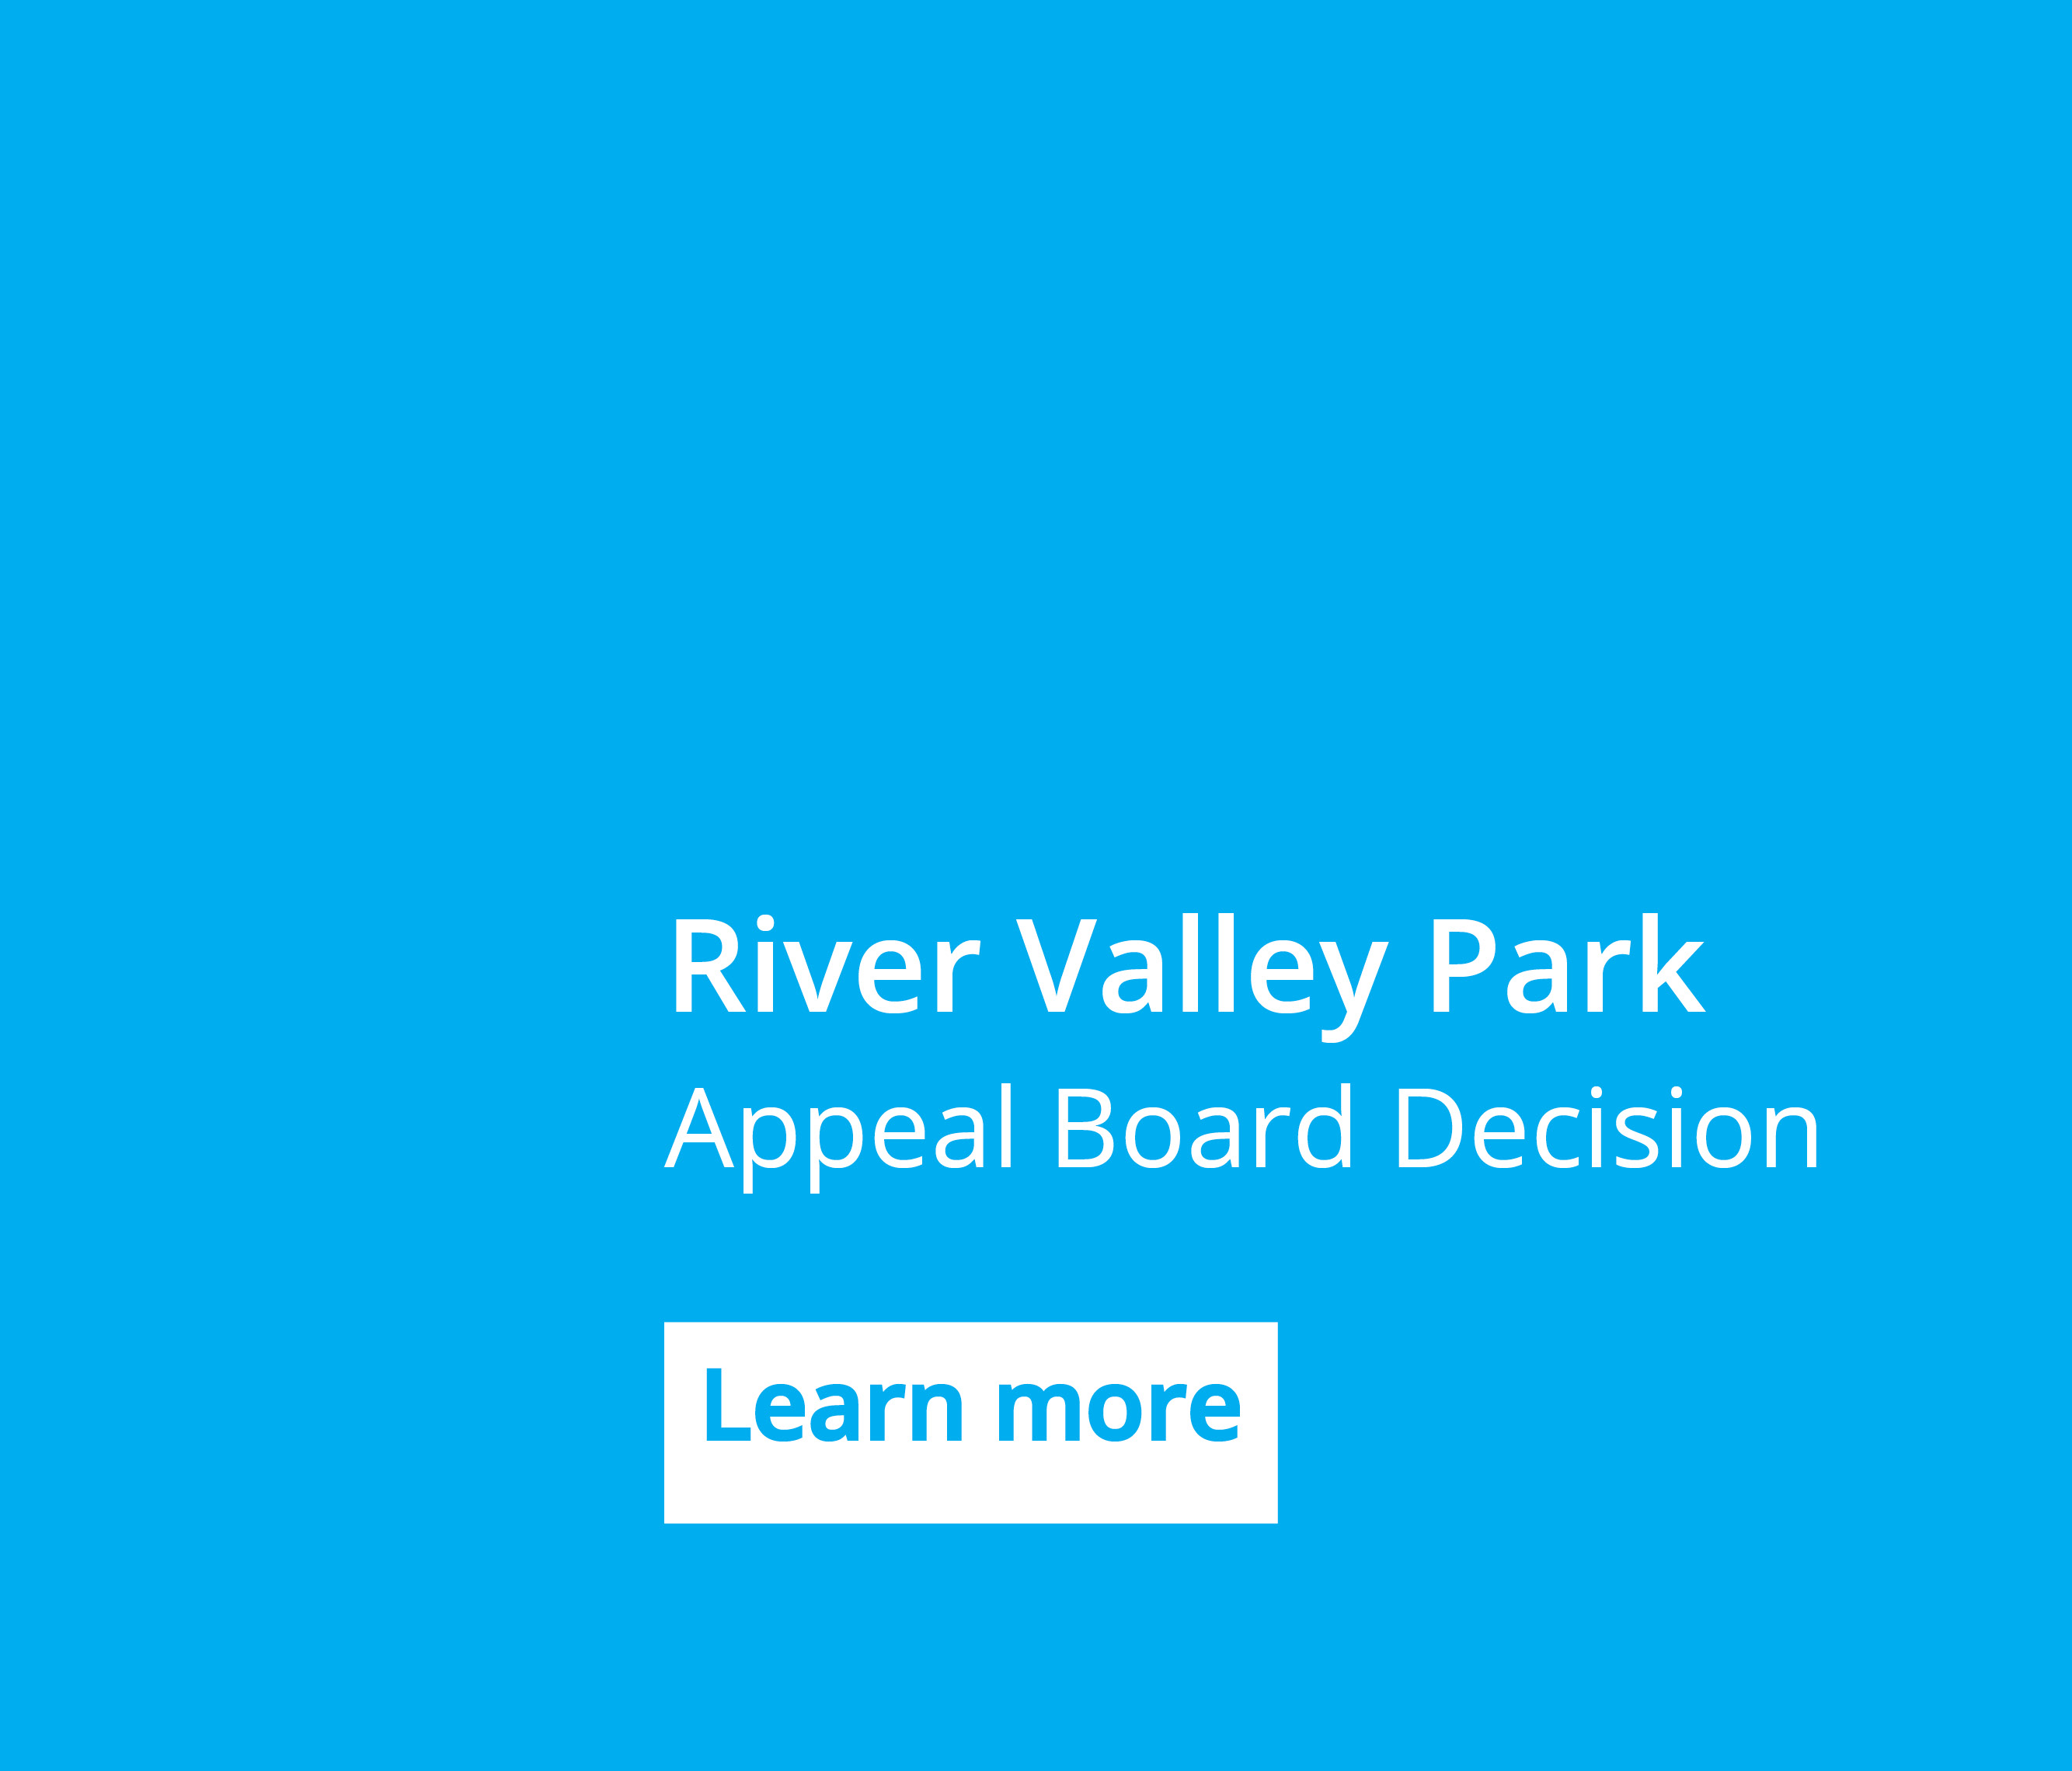 River Valley Park - Appeal Board Decision